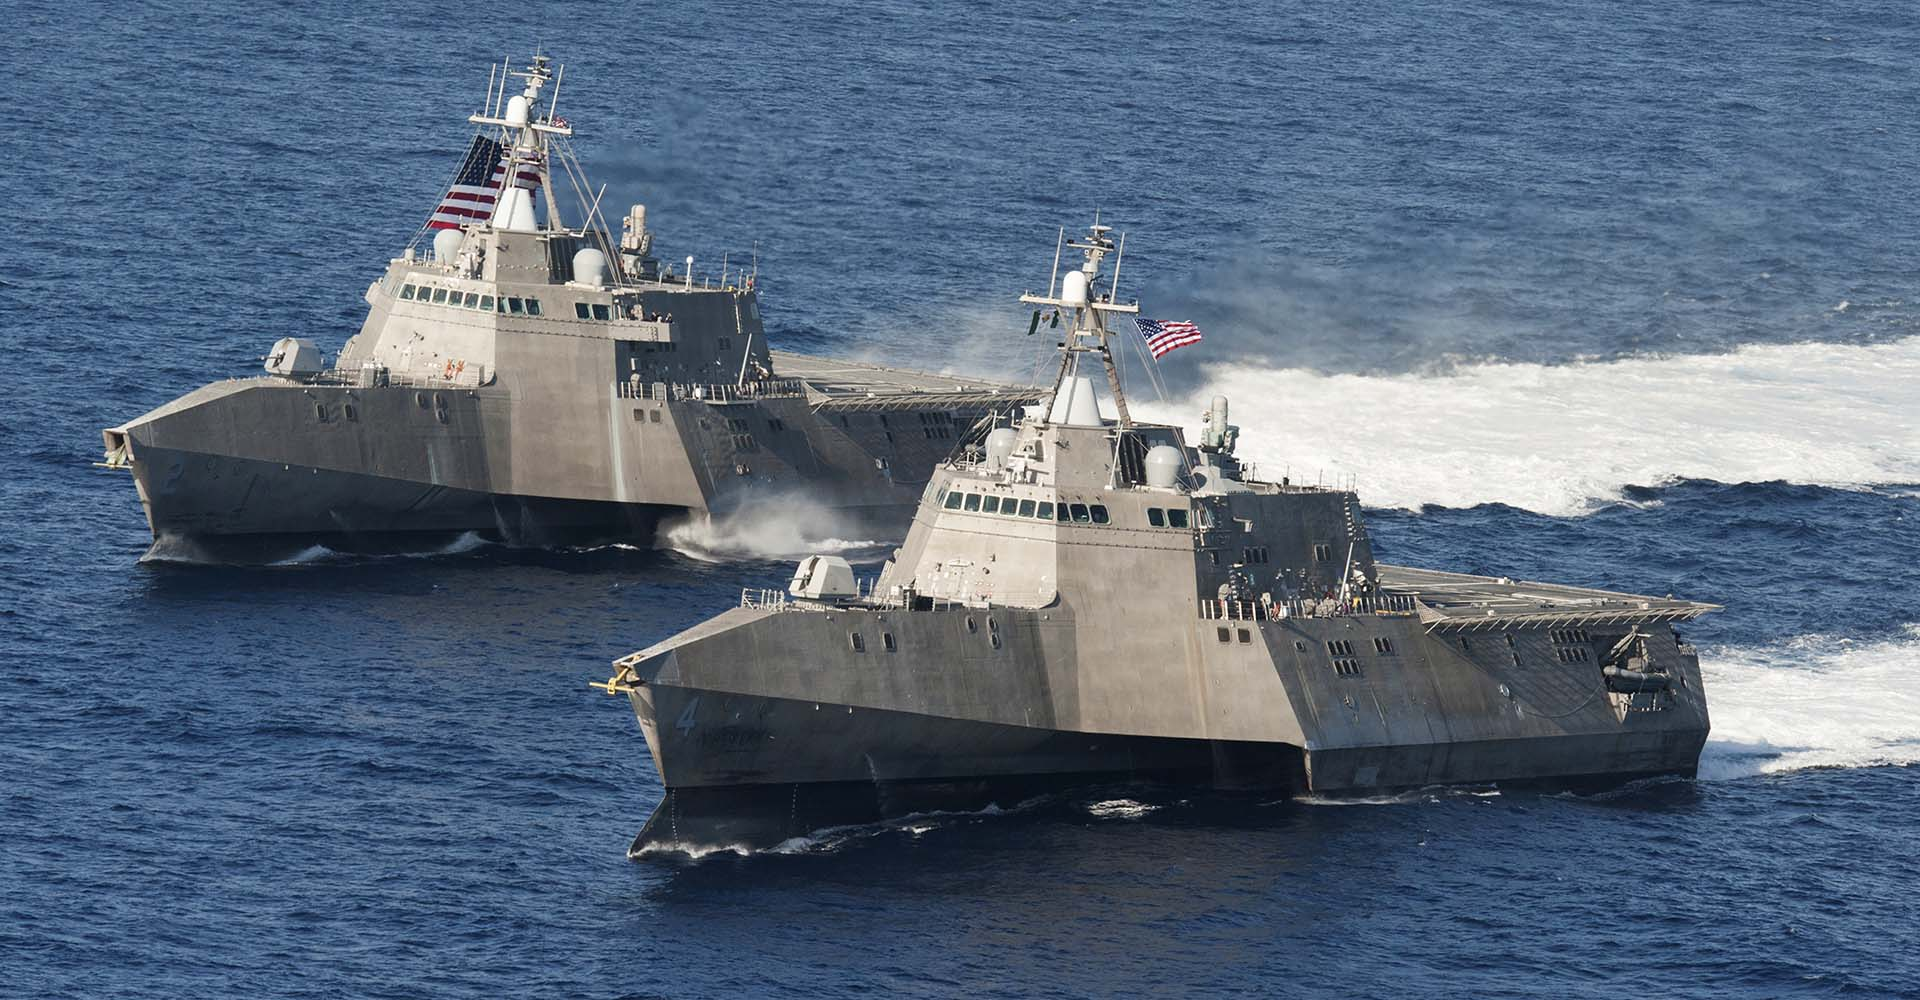 The littoral combat ships USS Independence and USS Coronado (U.S. Navy Photo/Chief Mass Communication Specialist Keith DeVinney)